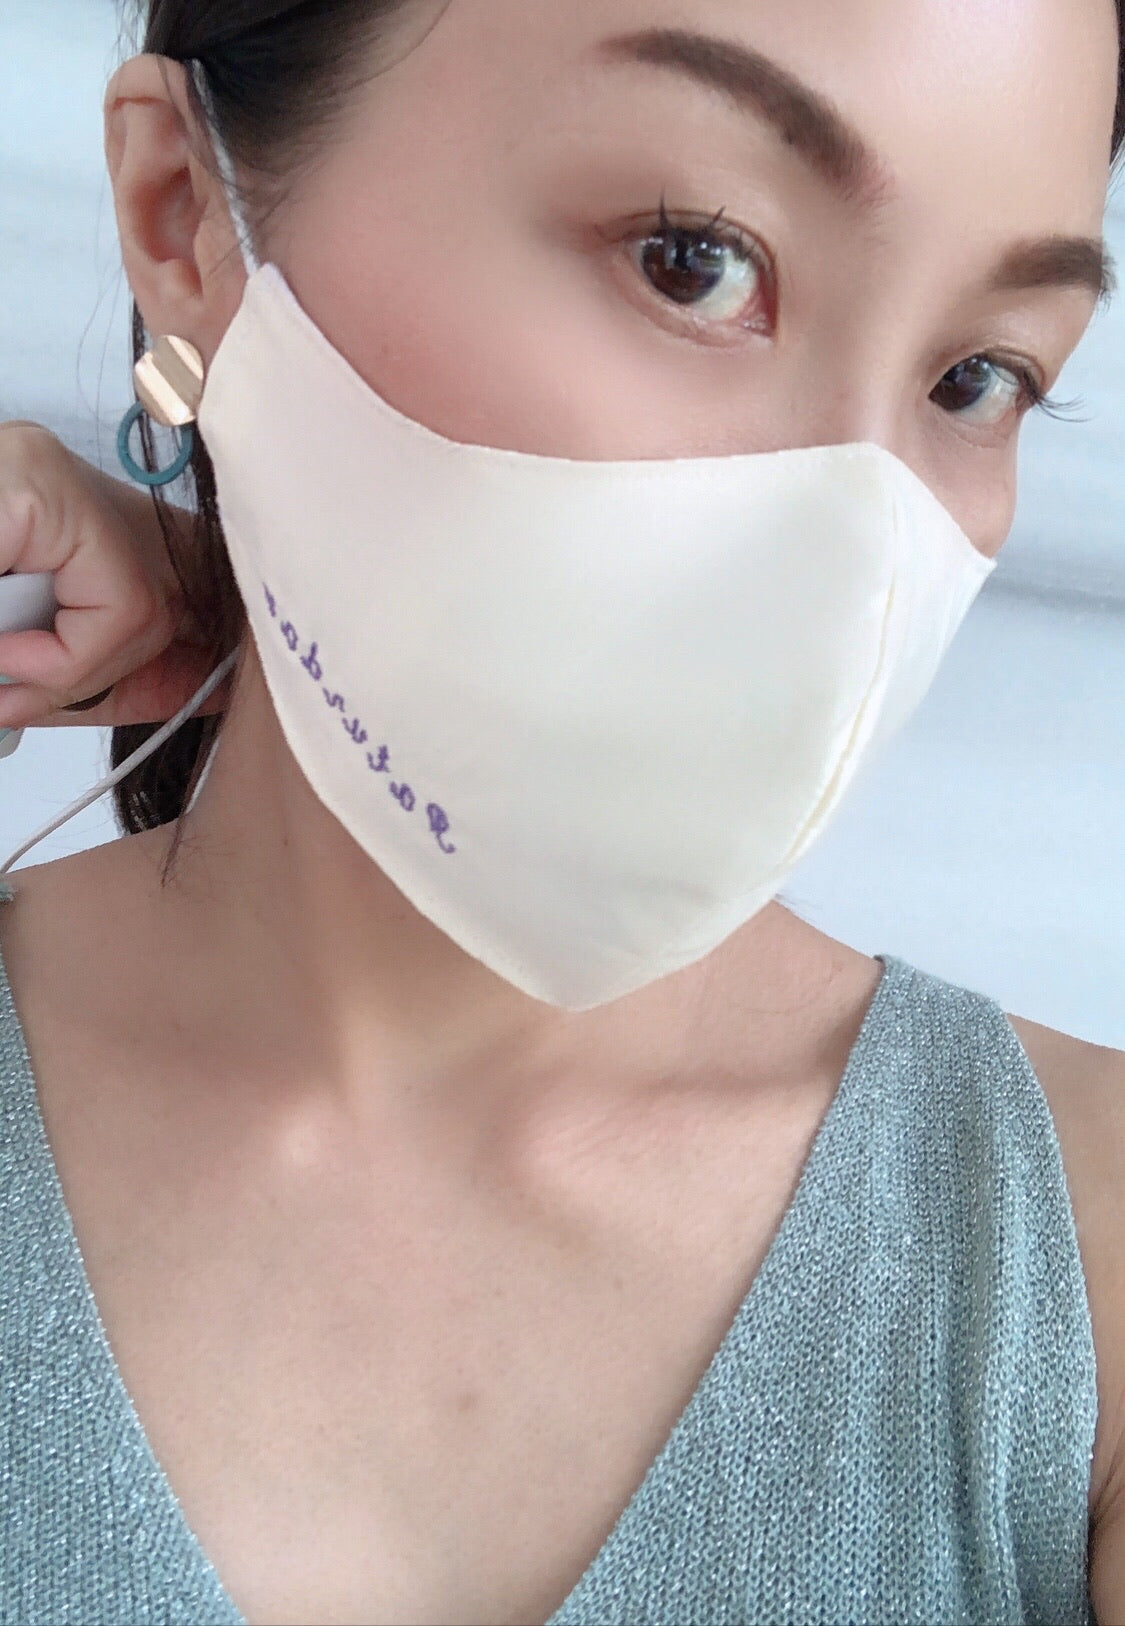 MEW SLING 3D Face Mask Without Name Embroidery - COTTON fabric